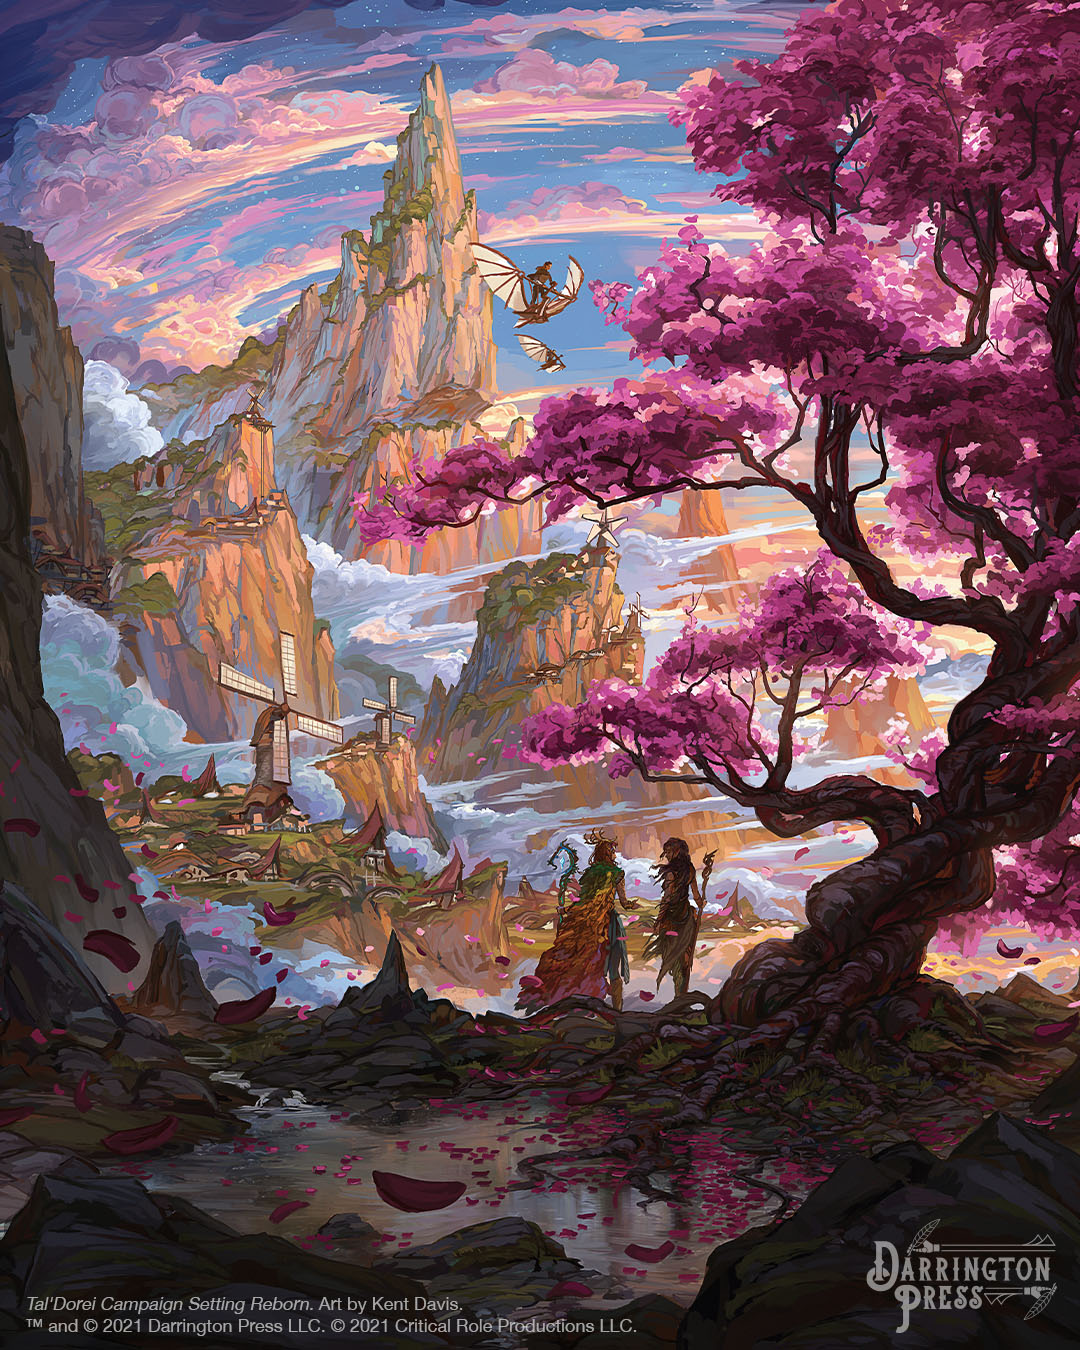 The landscape of Zephrah: A village among the clouds on grassy, spiralling mountain peaks. Two individuals look on at the village from near a large purple tree. Two individuals on skysails fly overhead. Art by Kent Davis.